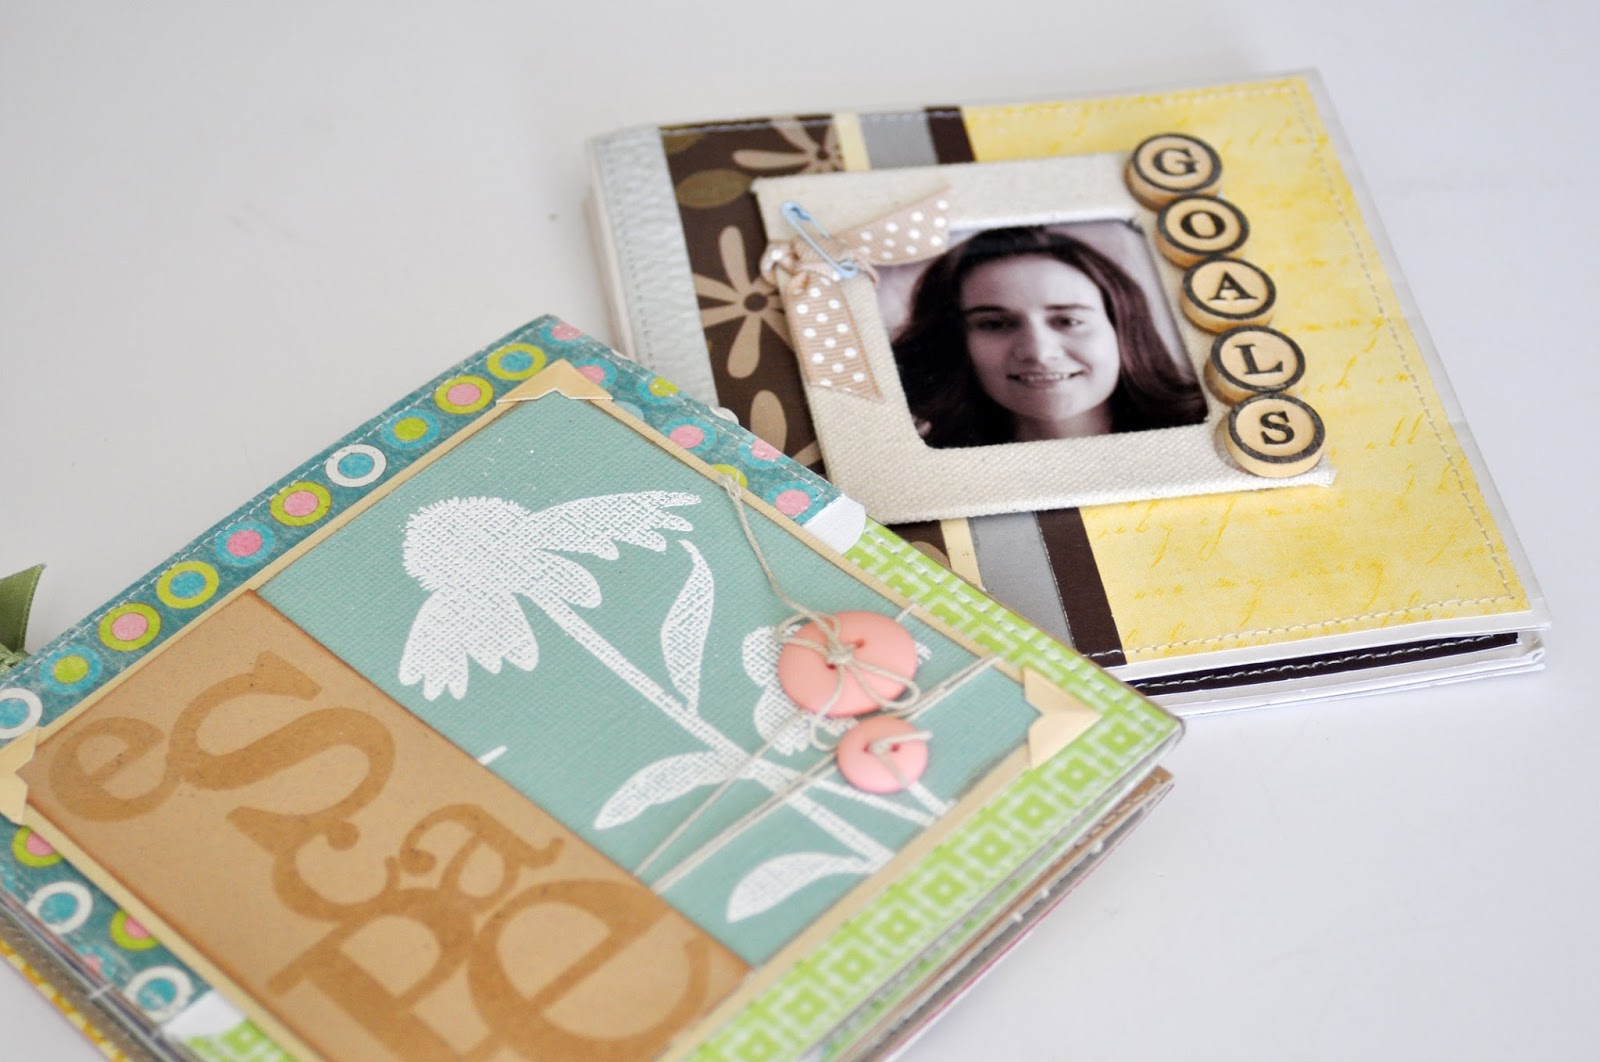 Accordion Mini Albums by Jen Gallacher found on www.jengallacher.com